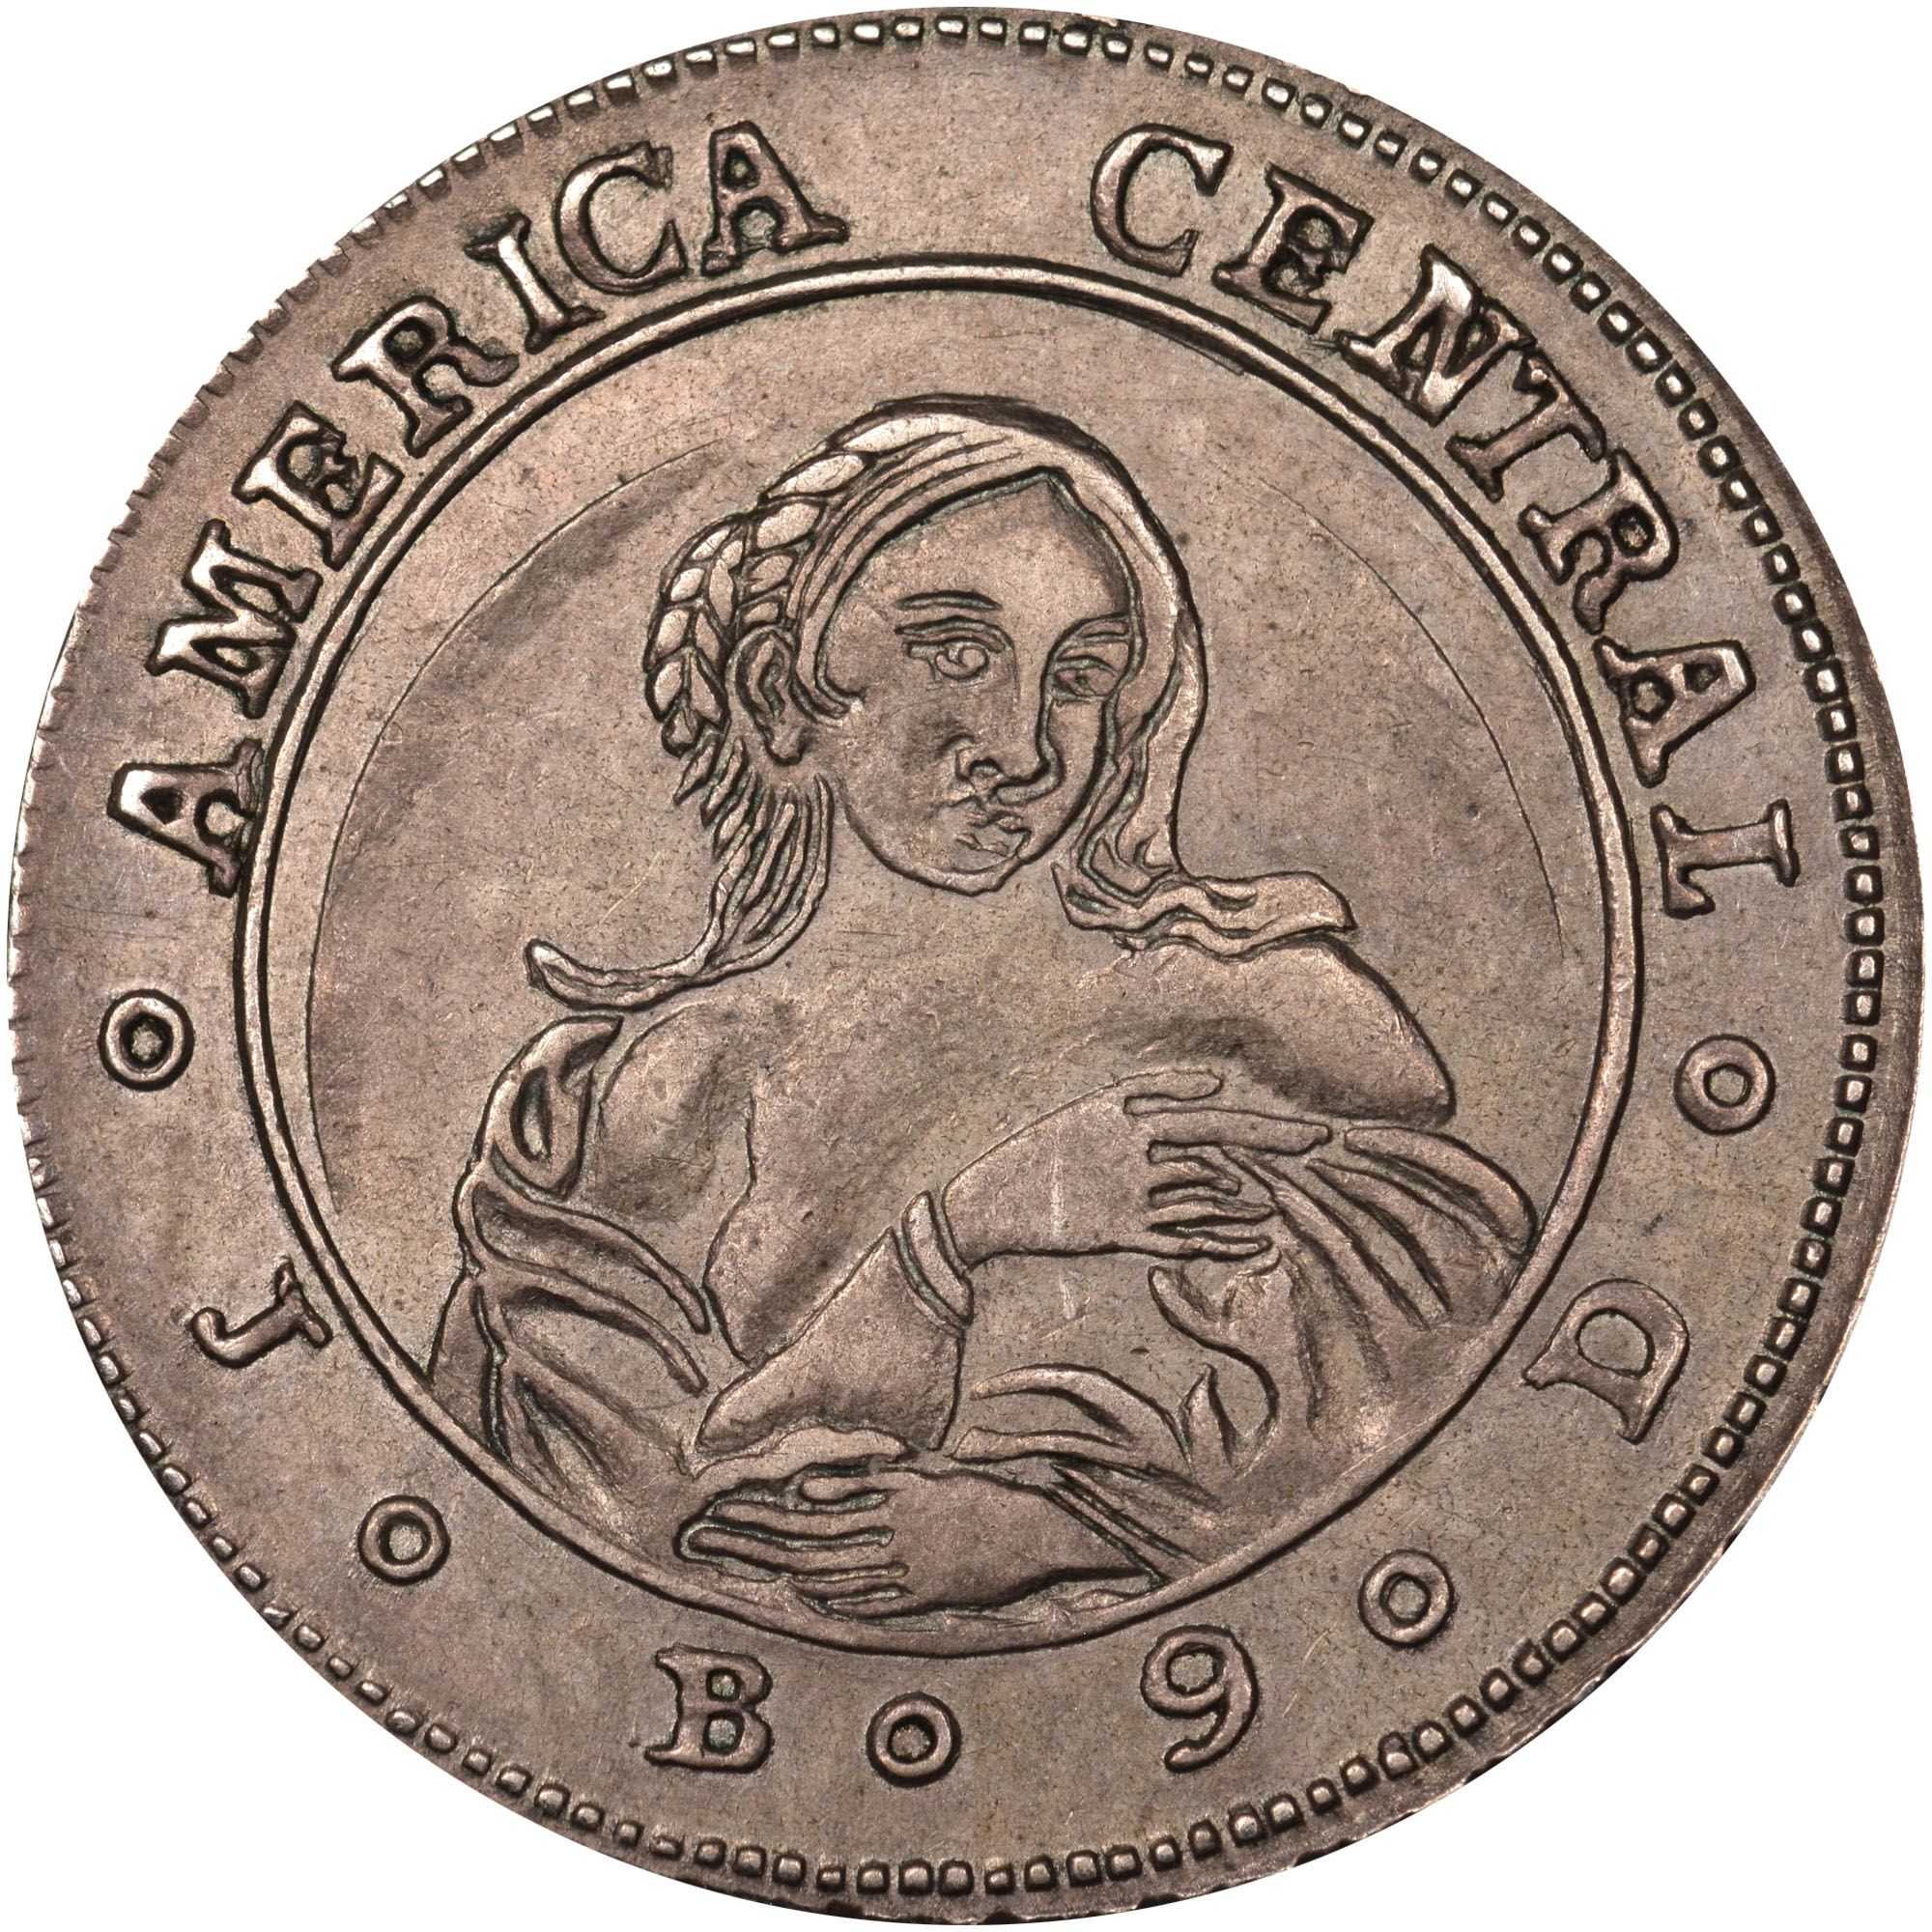 1849-1850 Costa Rica Real reverse